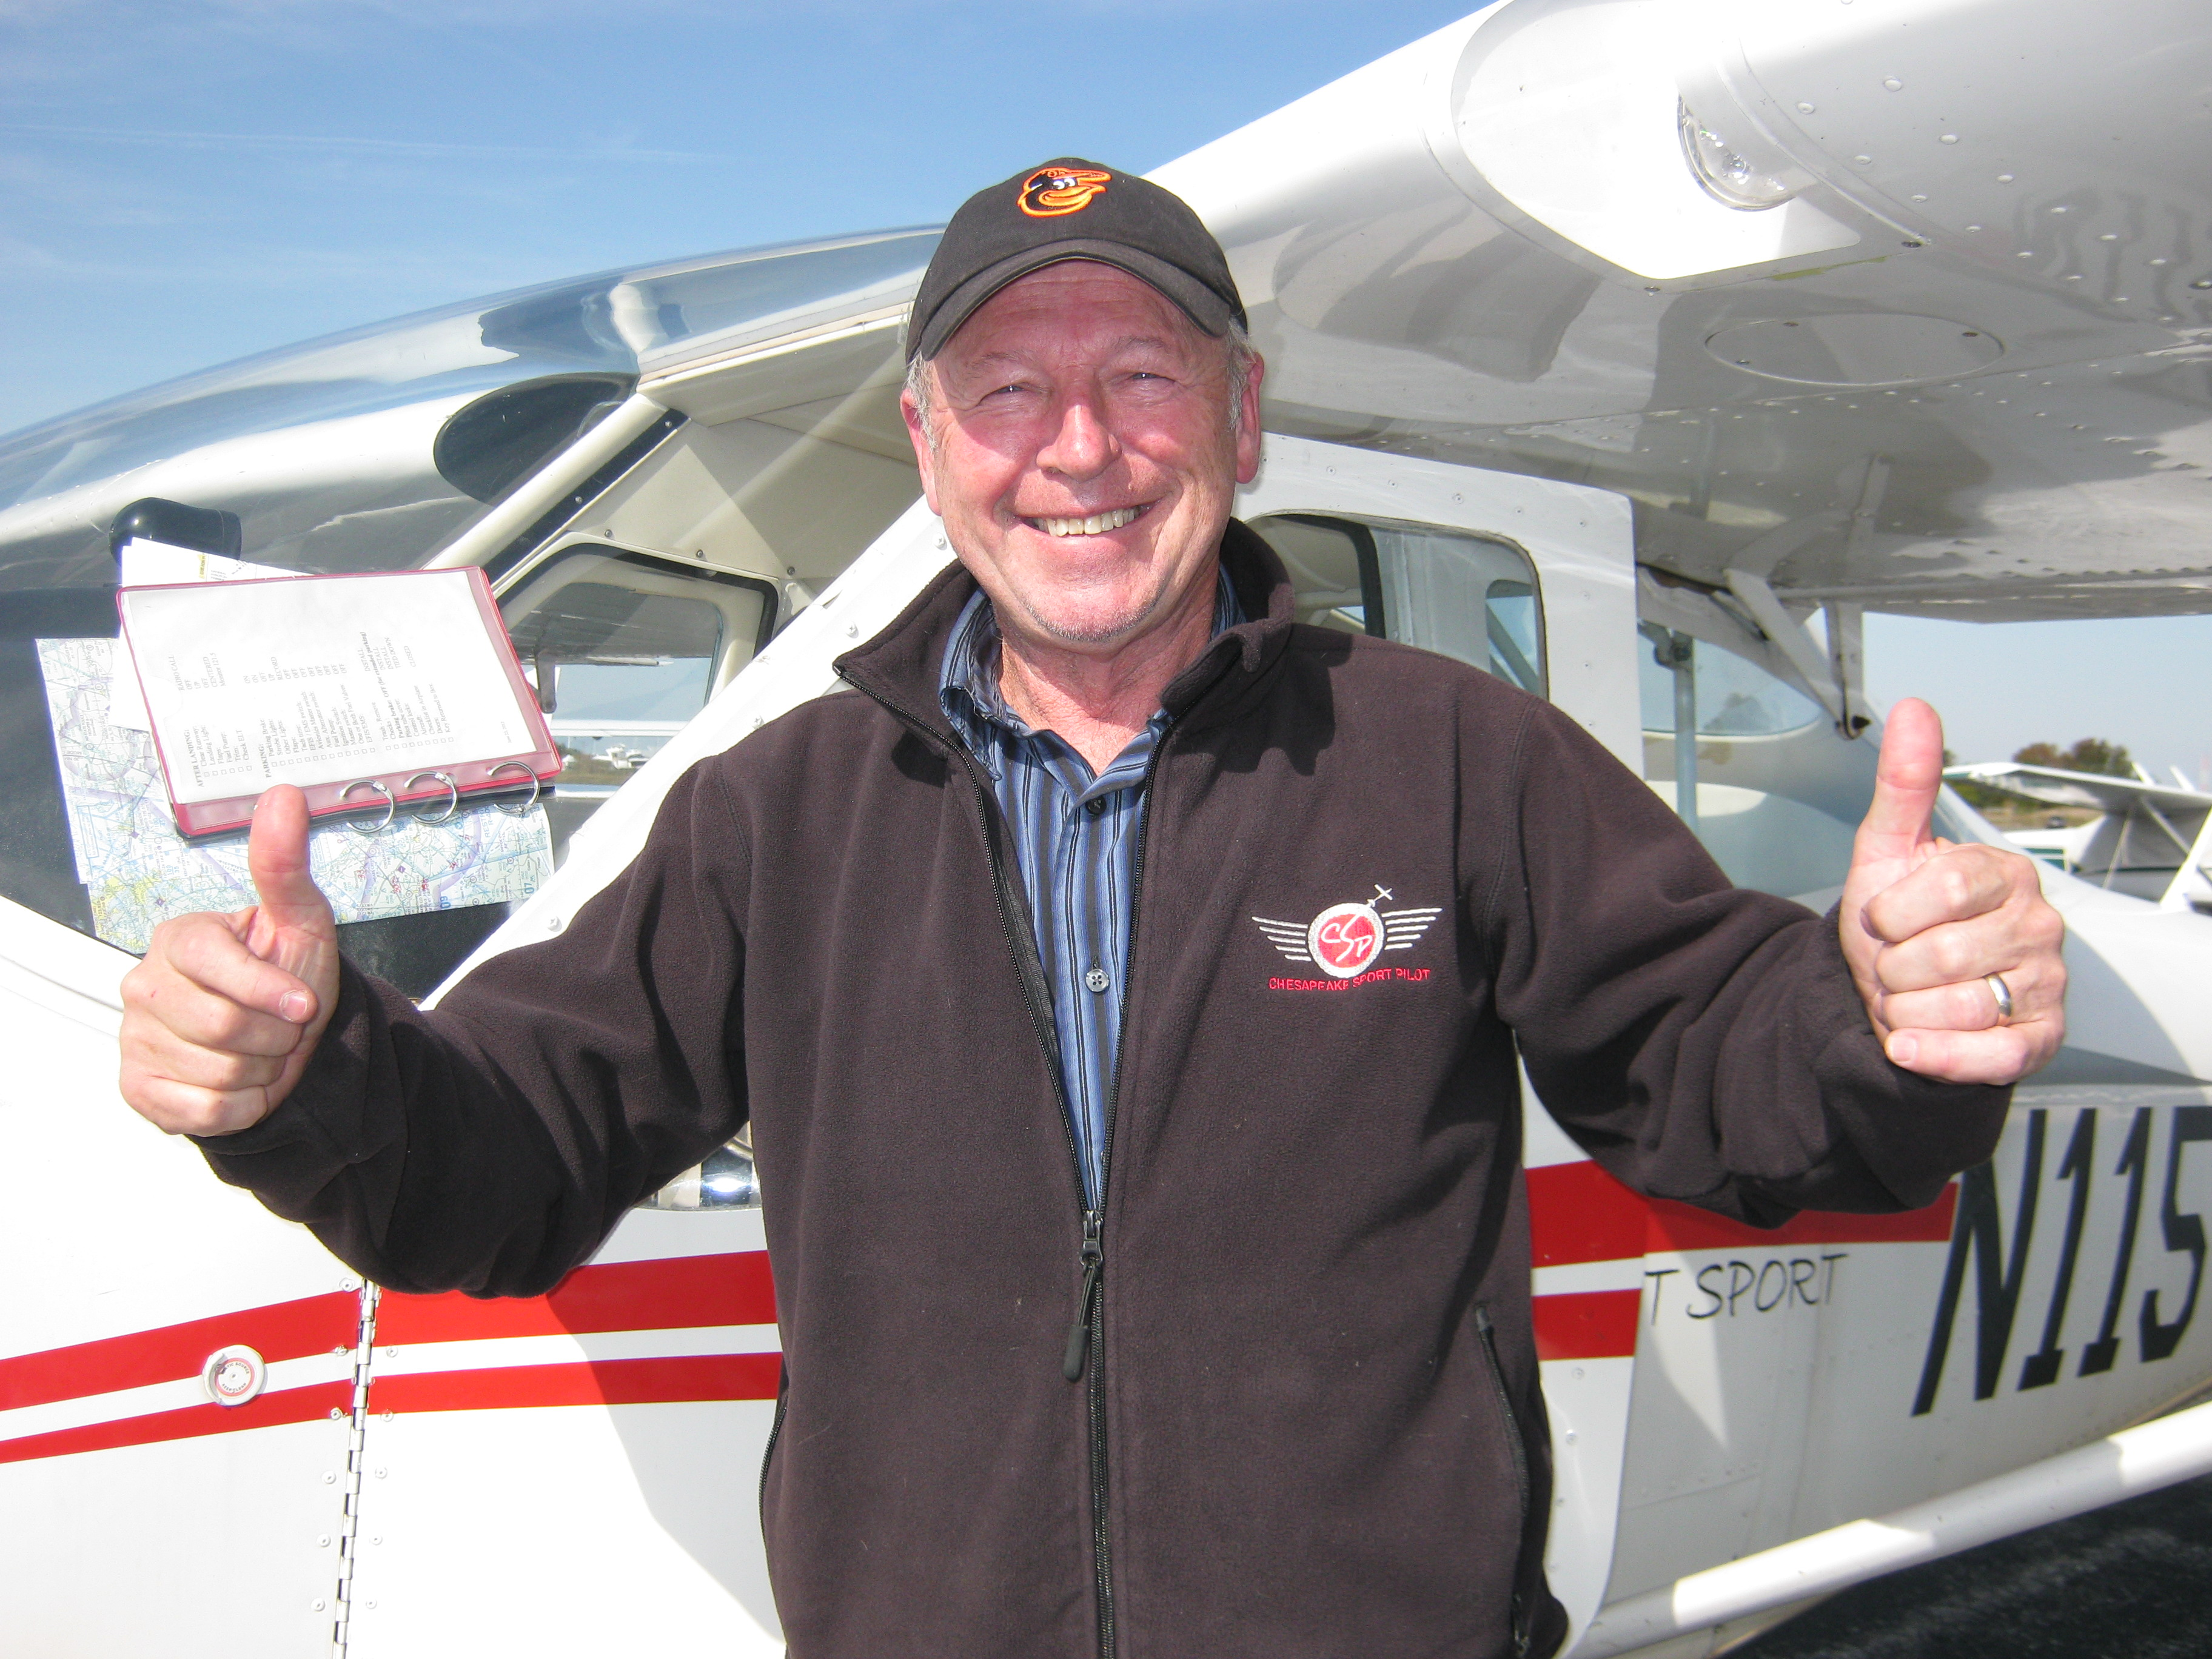 Which Rating Chesapeake Sport Pilot